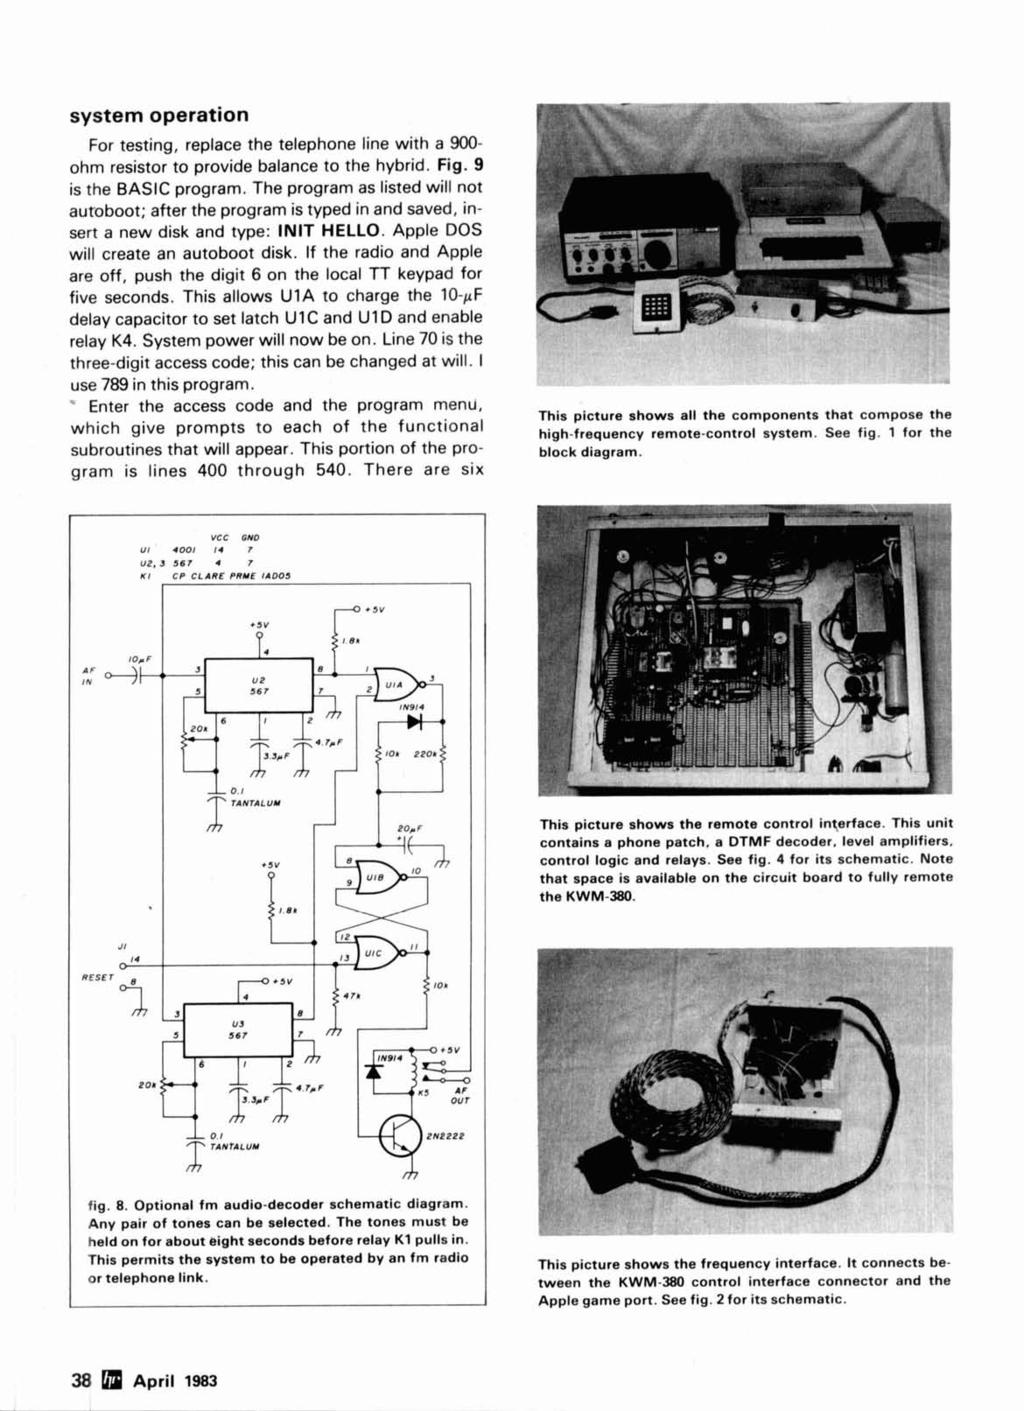 Morse Time Synthesis Remote Control Hf Ope Rat Ion Microprocessor Circuit Diagram Of Tester System Operation For Testing Replace The Telephone Line With A 900 Ohm Resistor To